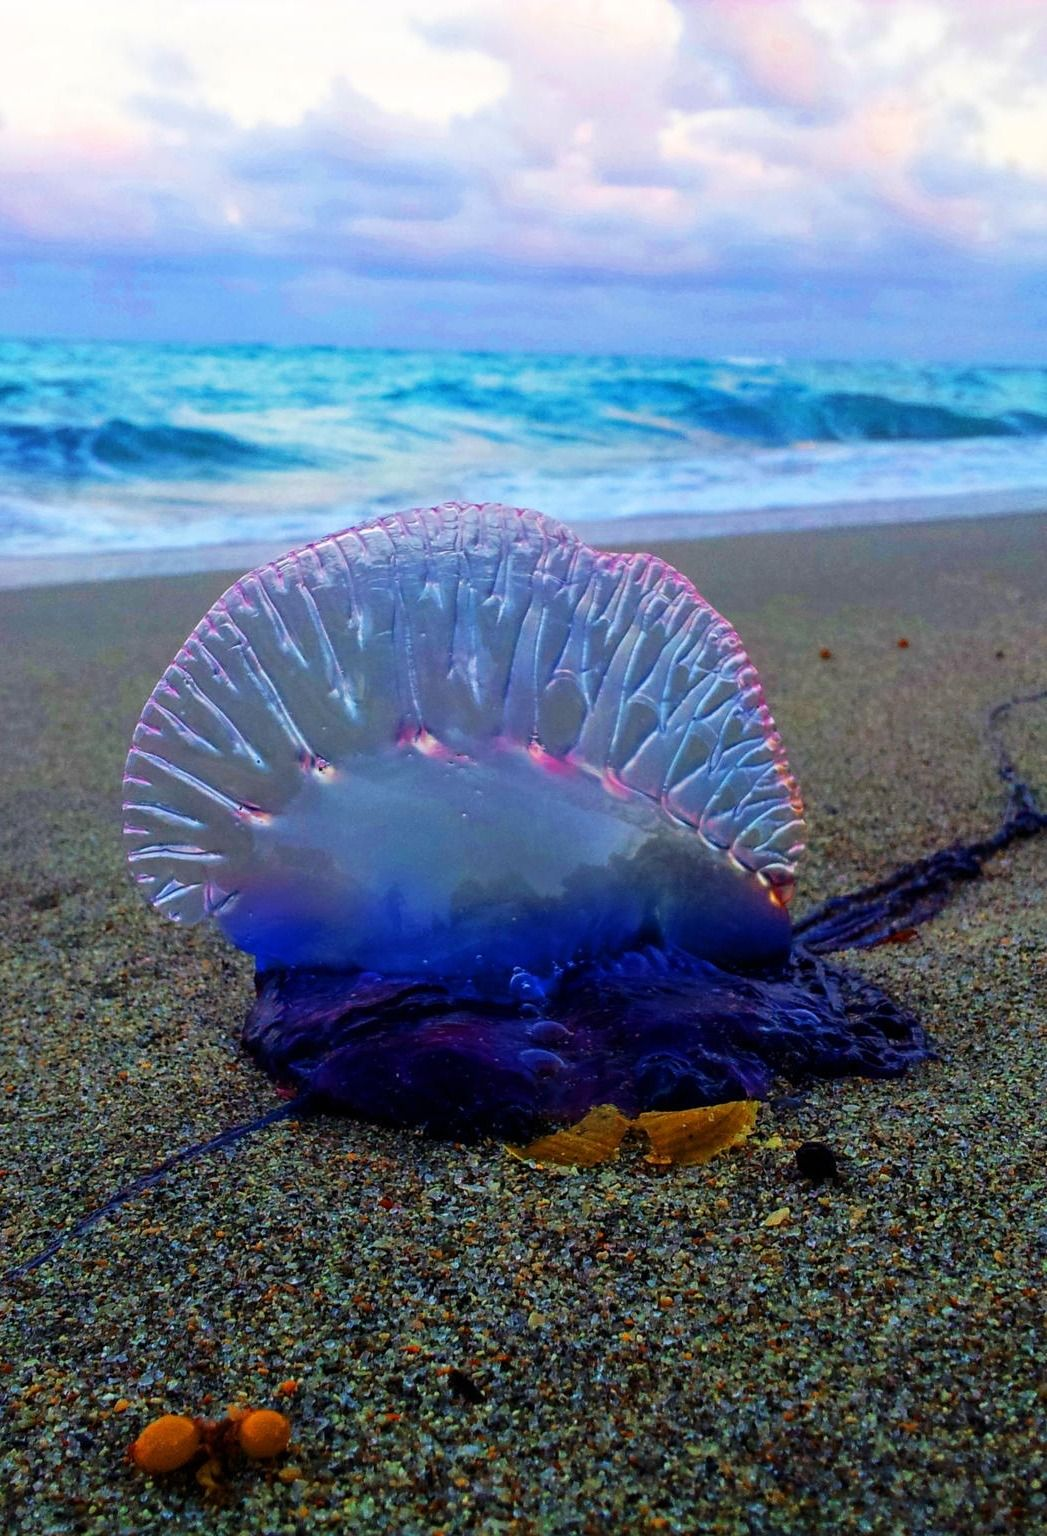 Poison Blue by Ale Reifsnider Beautiful sea creatures